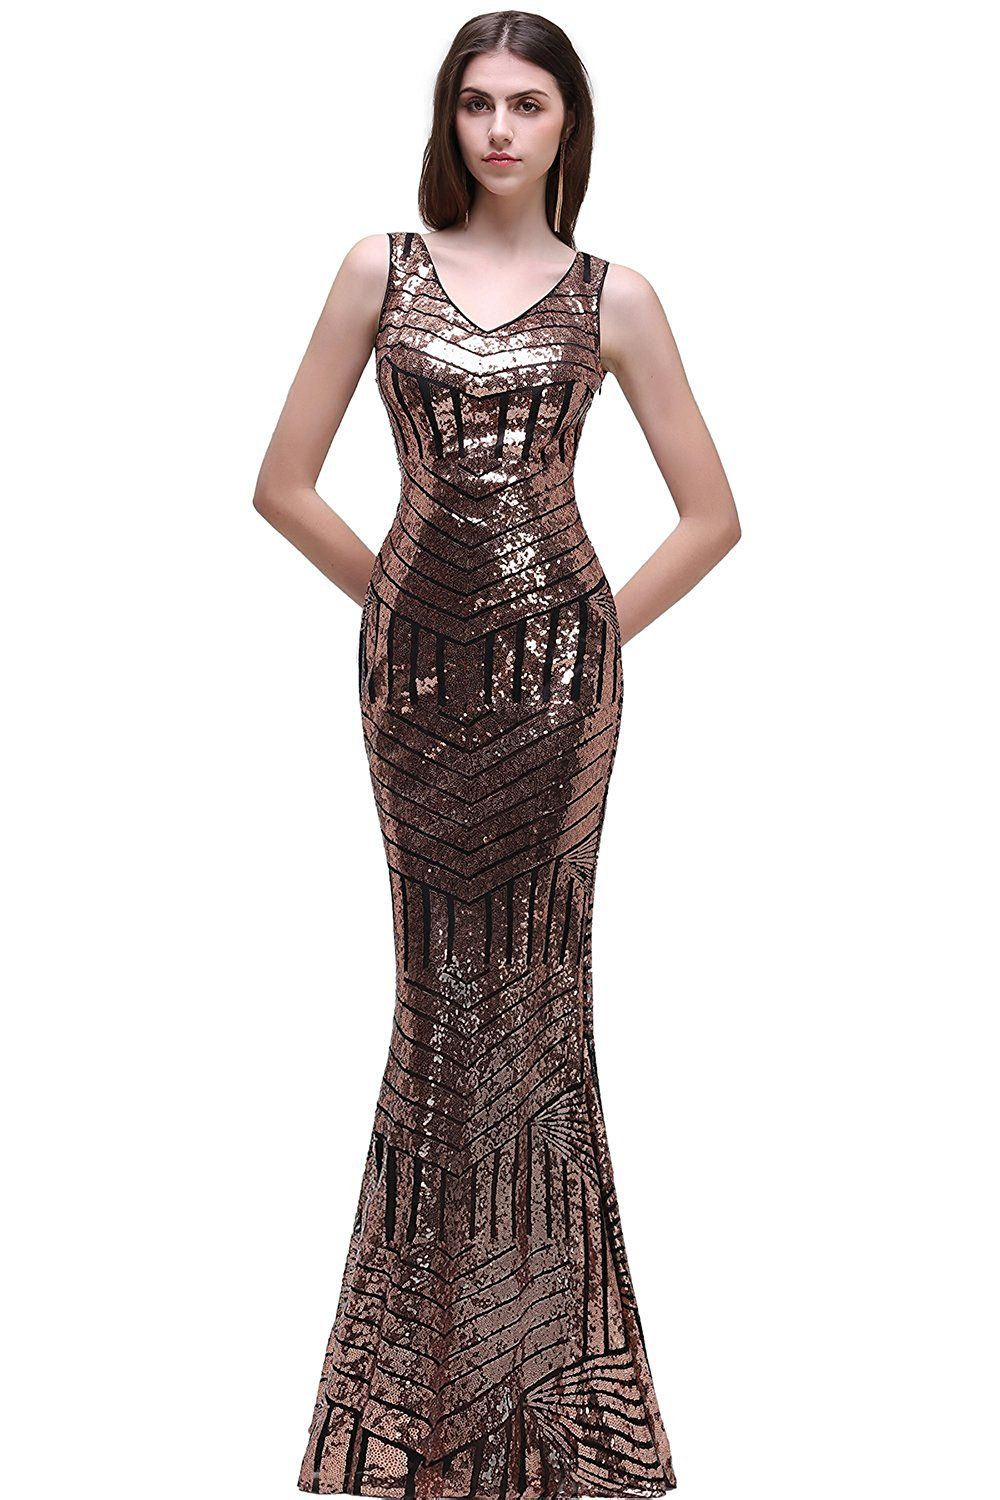 Amazon women geometric sequins sleeveless bodycon mermaid dress